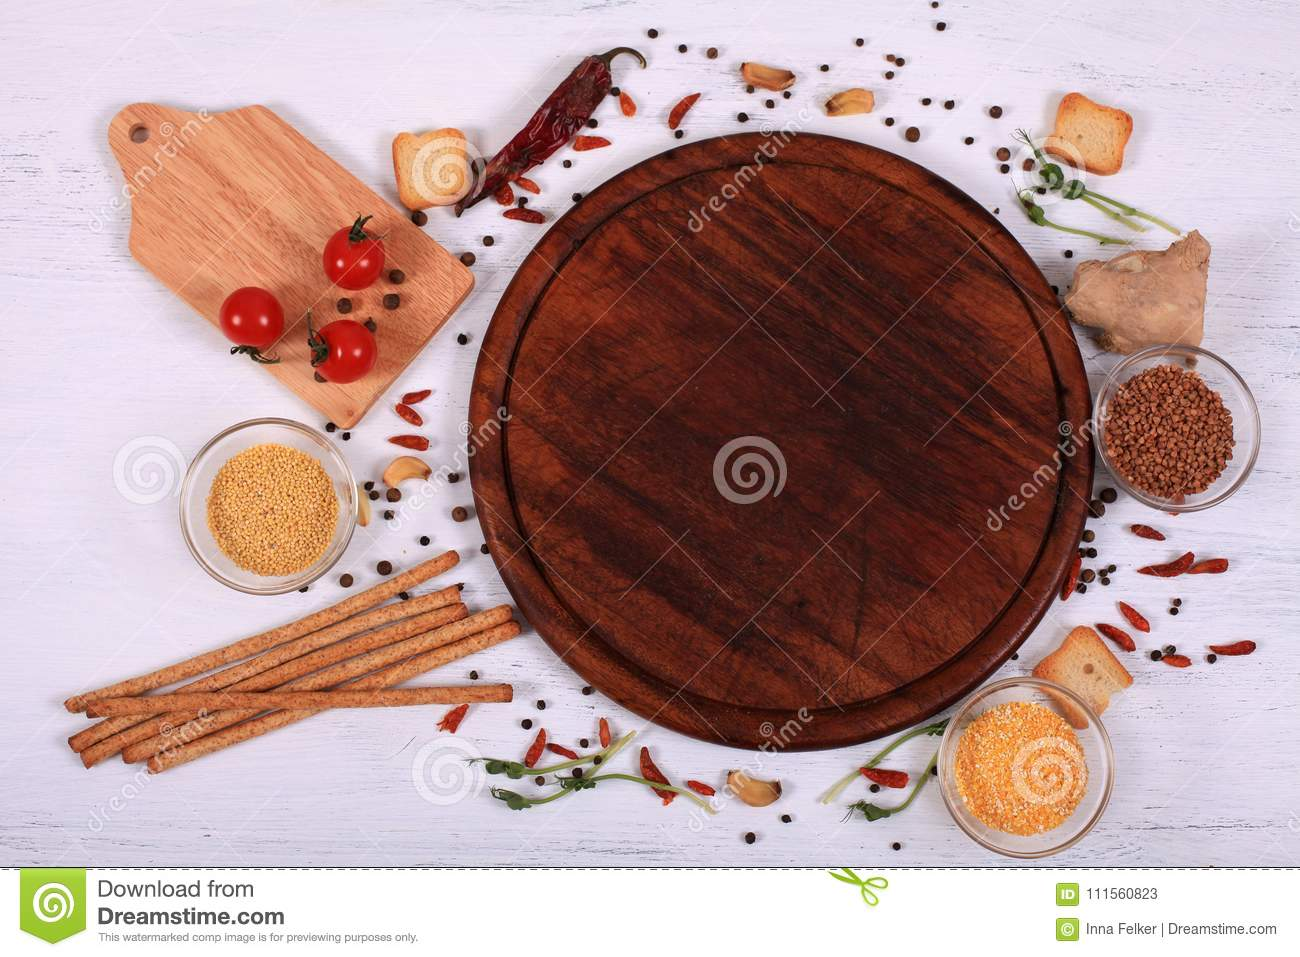 Food frame around brown round cutting board on white wooden table.